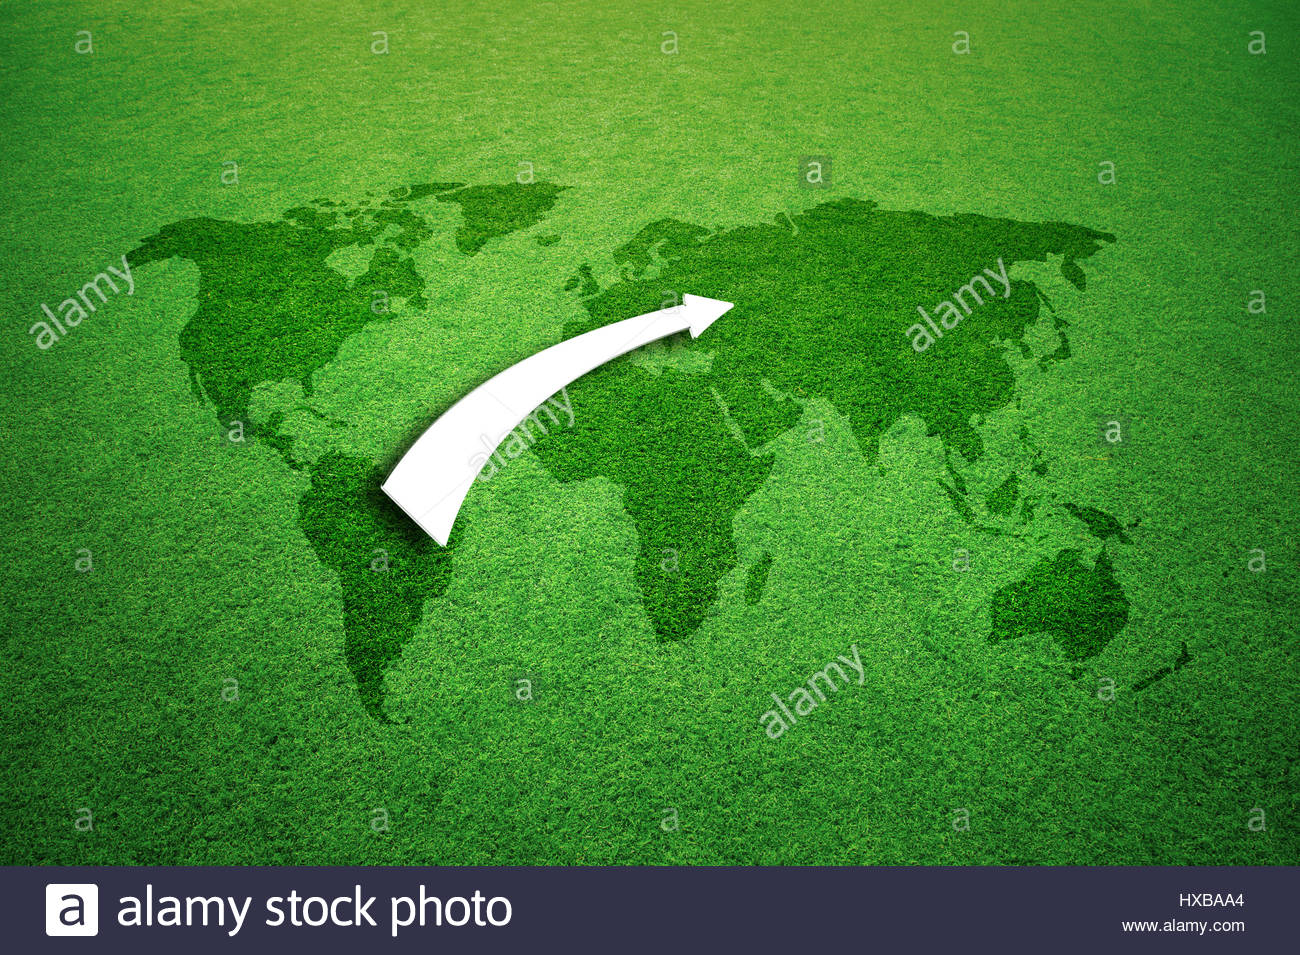 Soccer game background with grass textured world map and soccer game background with grass textured world map and illustrated flag pattern arrow gumiabroncs Choice Image